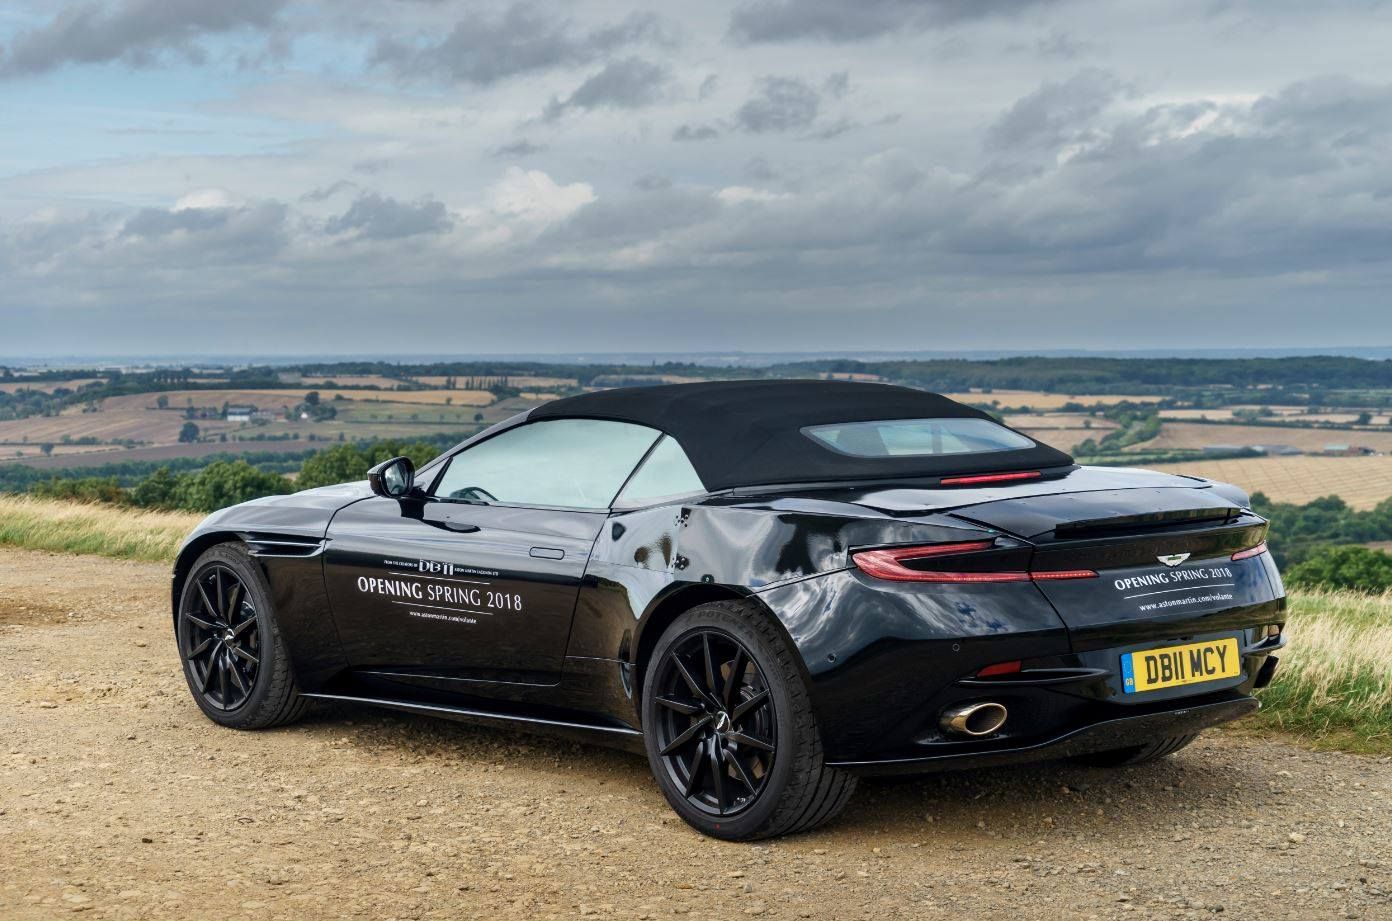 Aston Martin Just Strip Teased the New DB11 Convertible